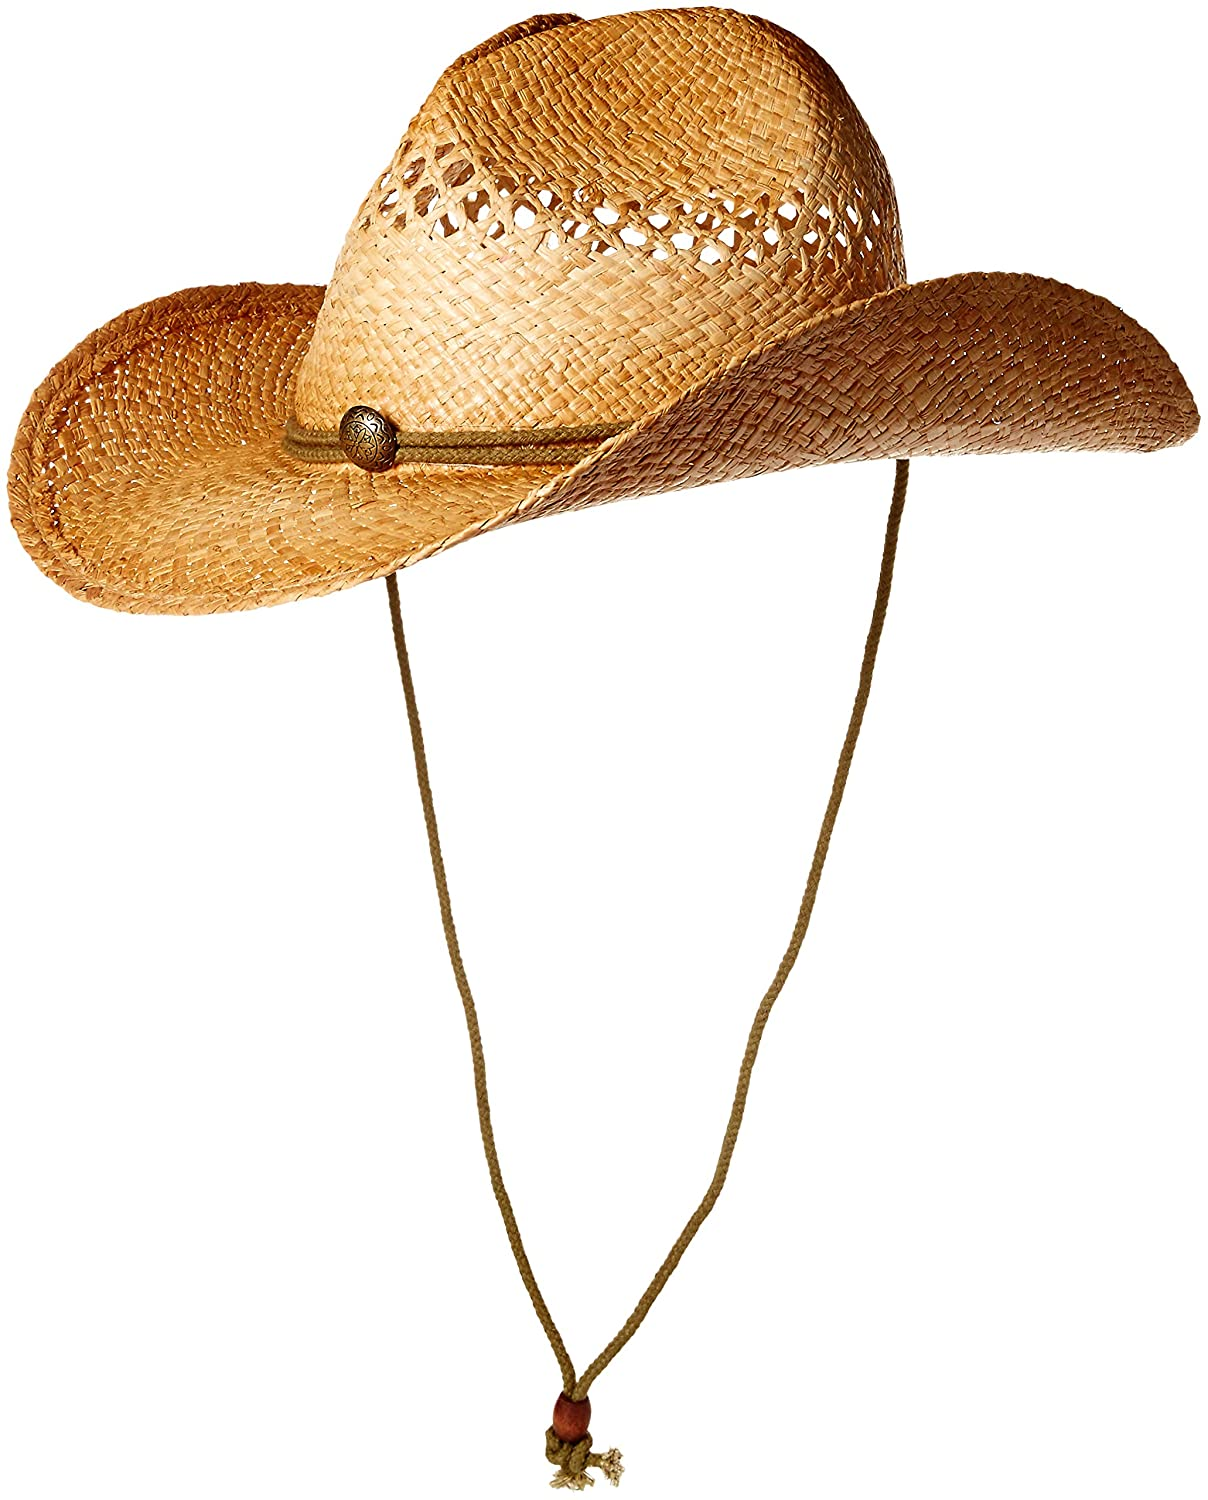 a7f4ad703 Henschel Hats Vented Hiker Straw Raffia Western Cowboy Hat Hand Stained  (Large)